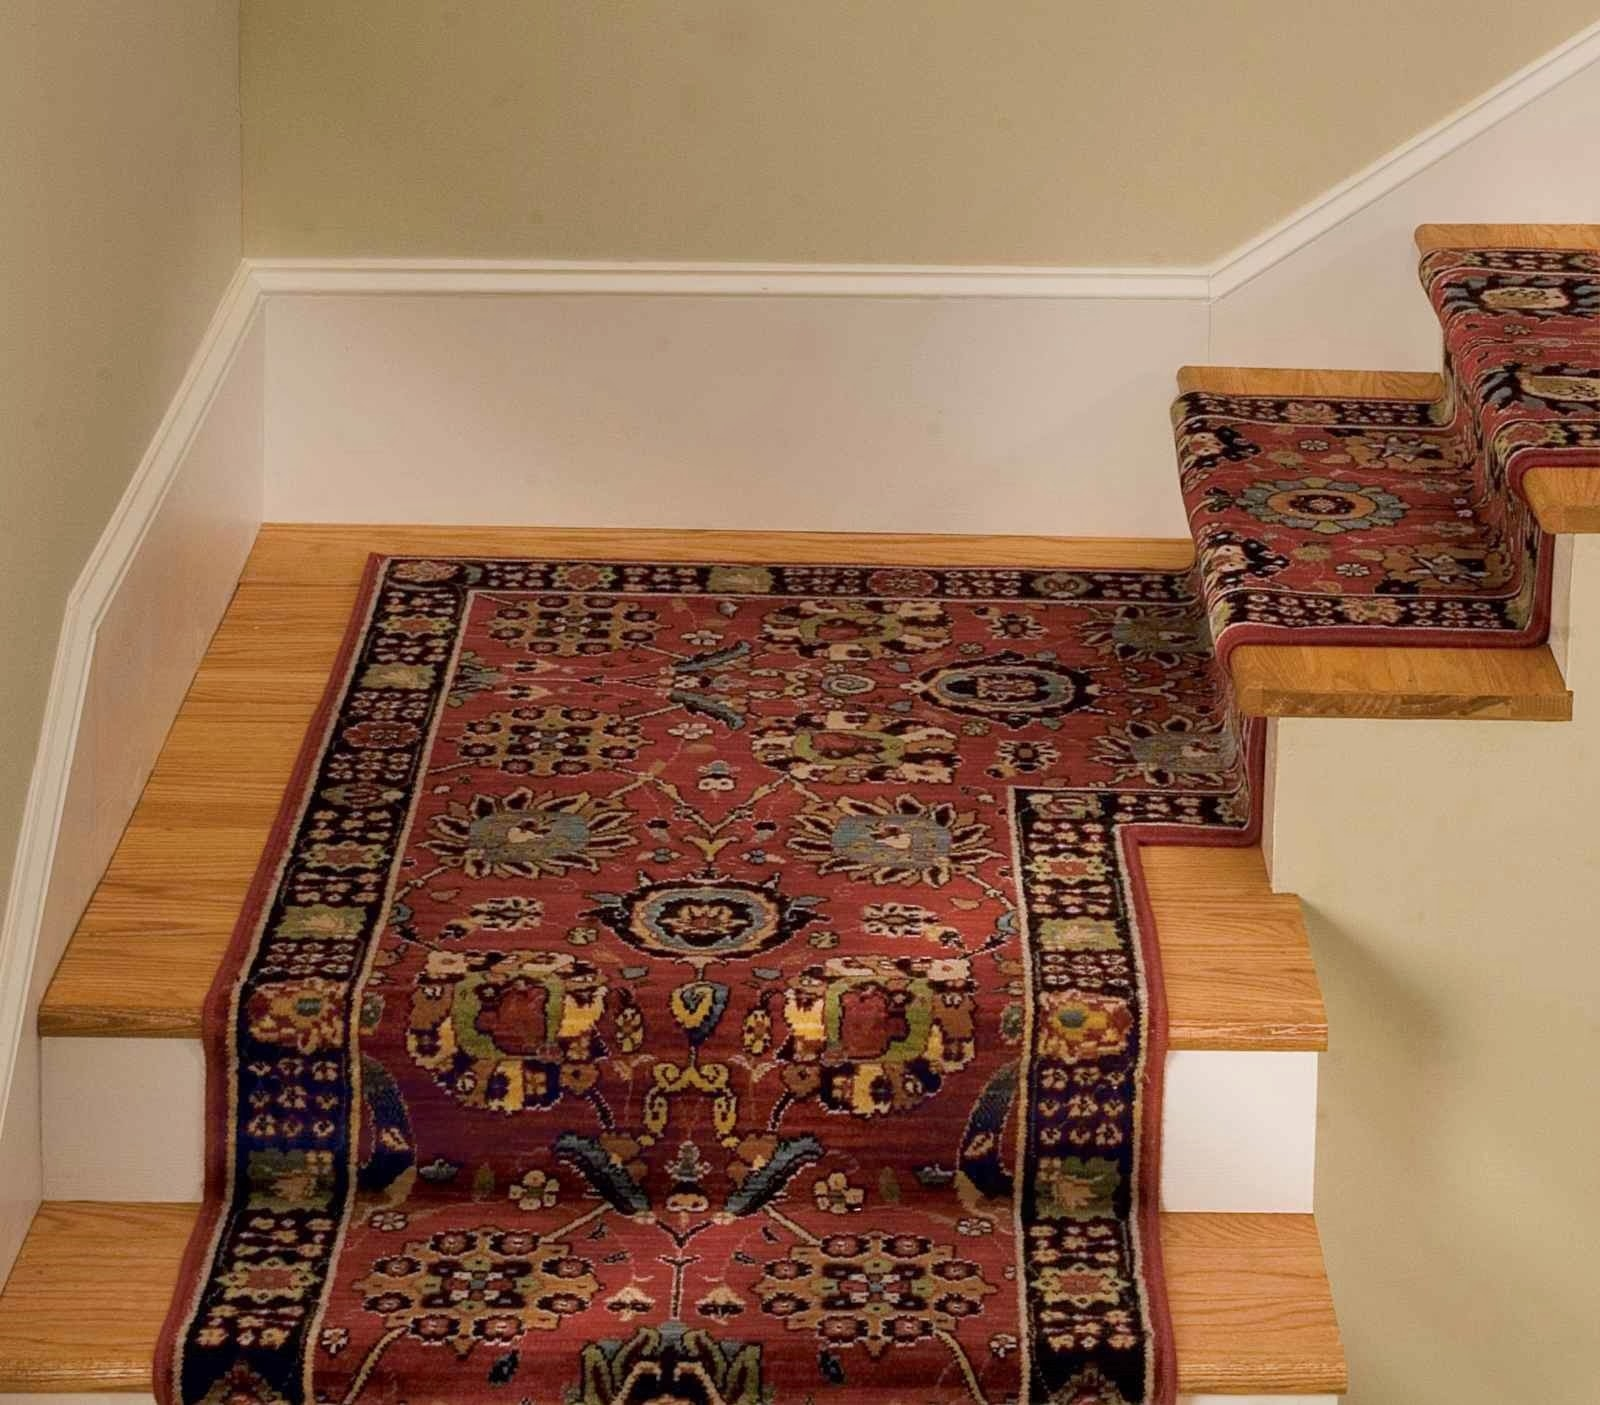 Flooring Pretty Stair Treads Carpet For Stair Decoration Idea Throughout Non Slip Stair Treads Carpets (Image 8 of 15)